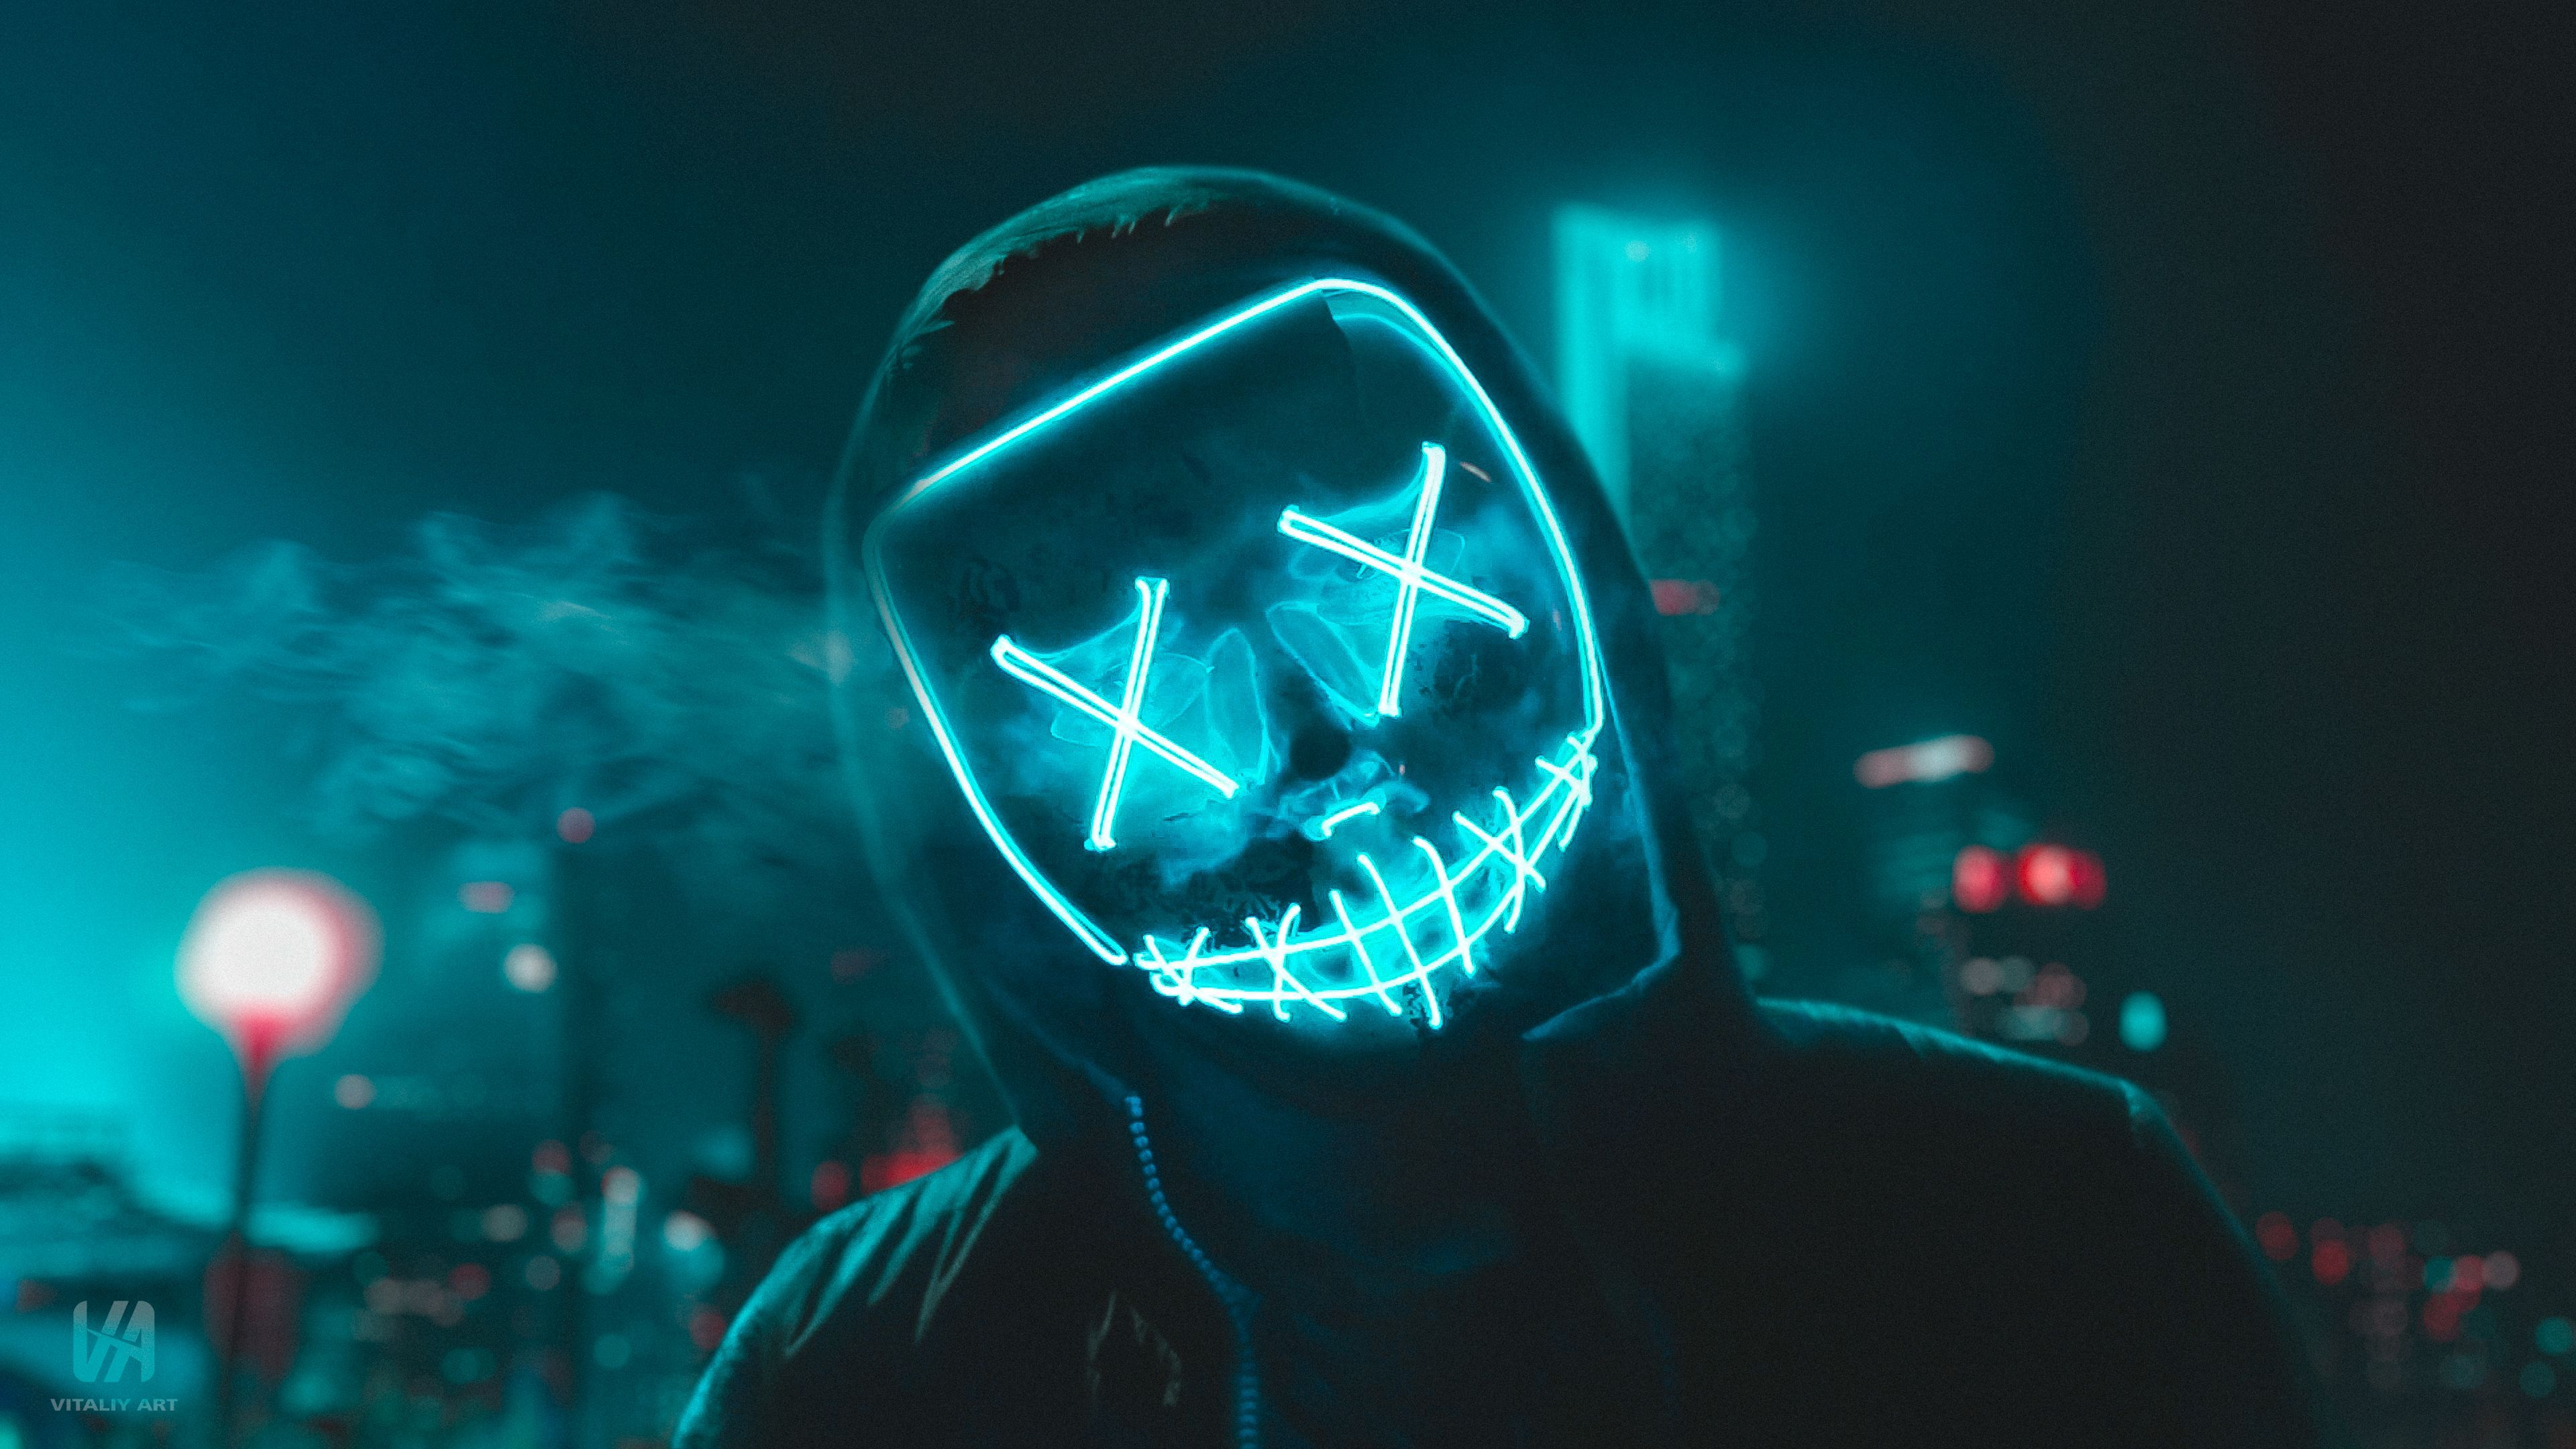 LED Mask Wallpapers Top Free LED Mask Backgrounds